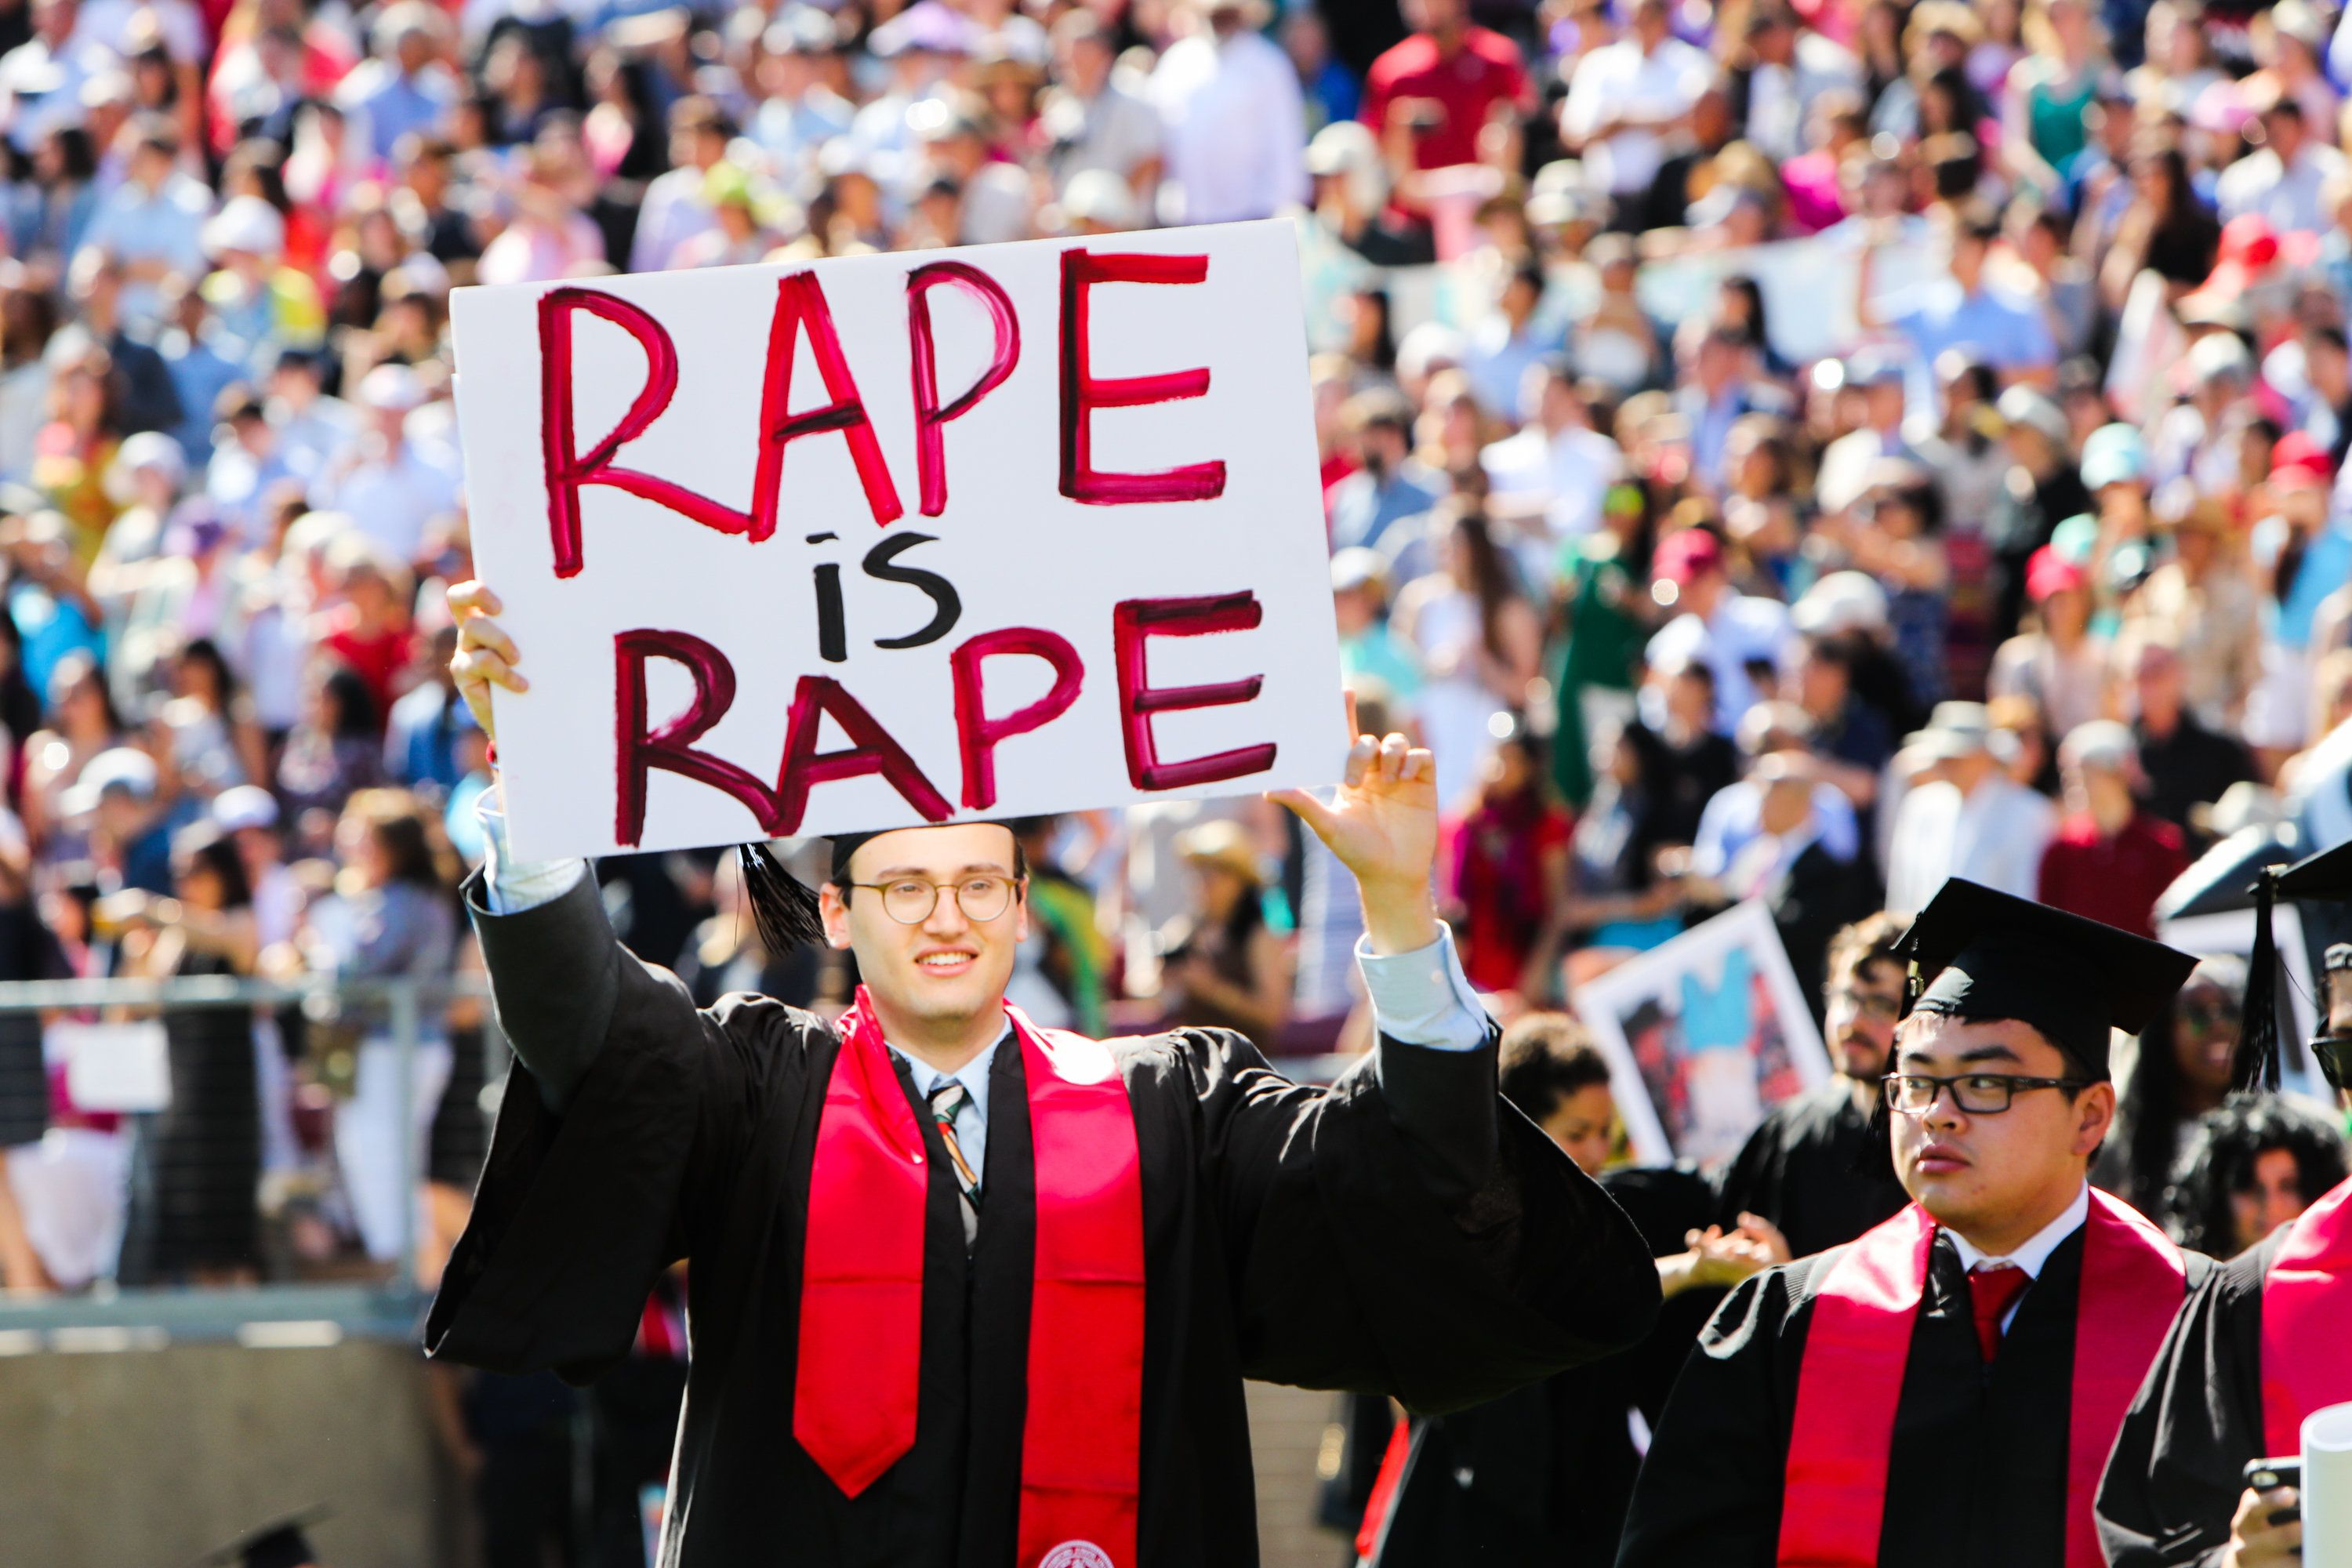 A Stanford student carries a timely sign during graduation ceremonies on June